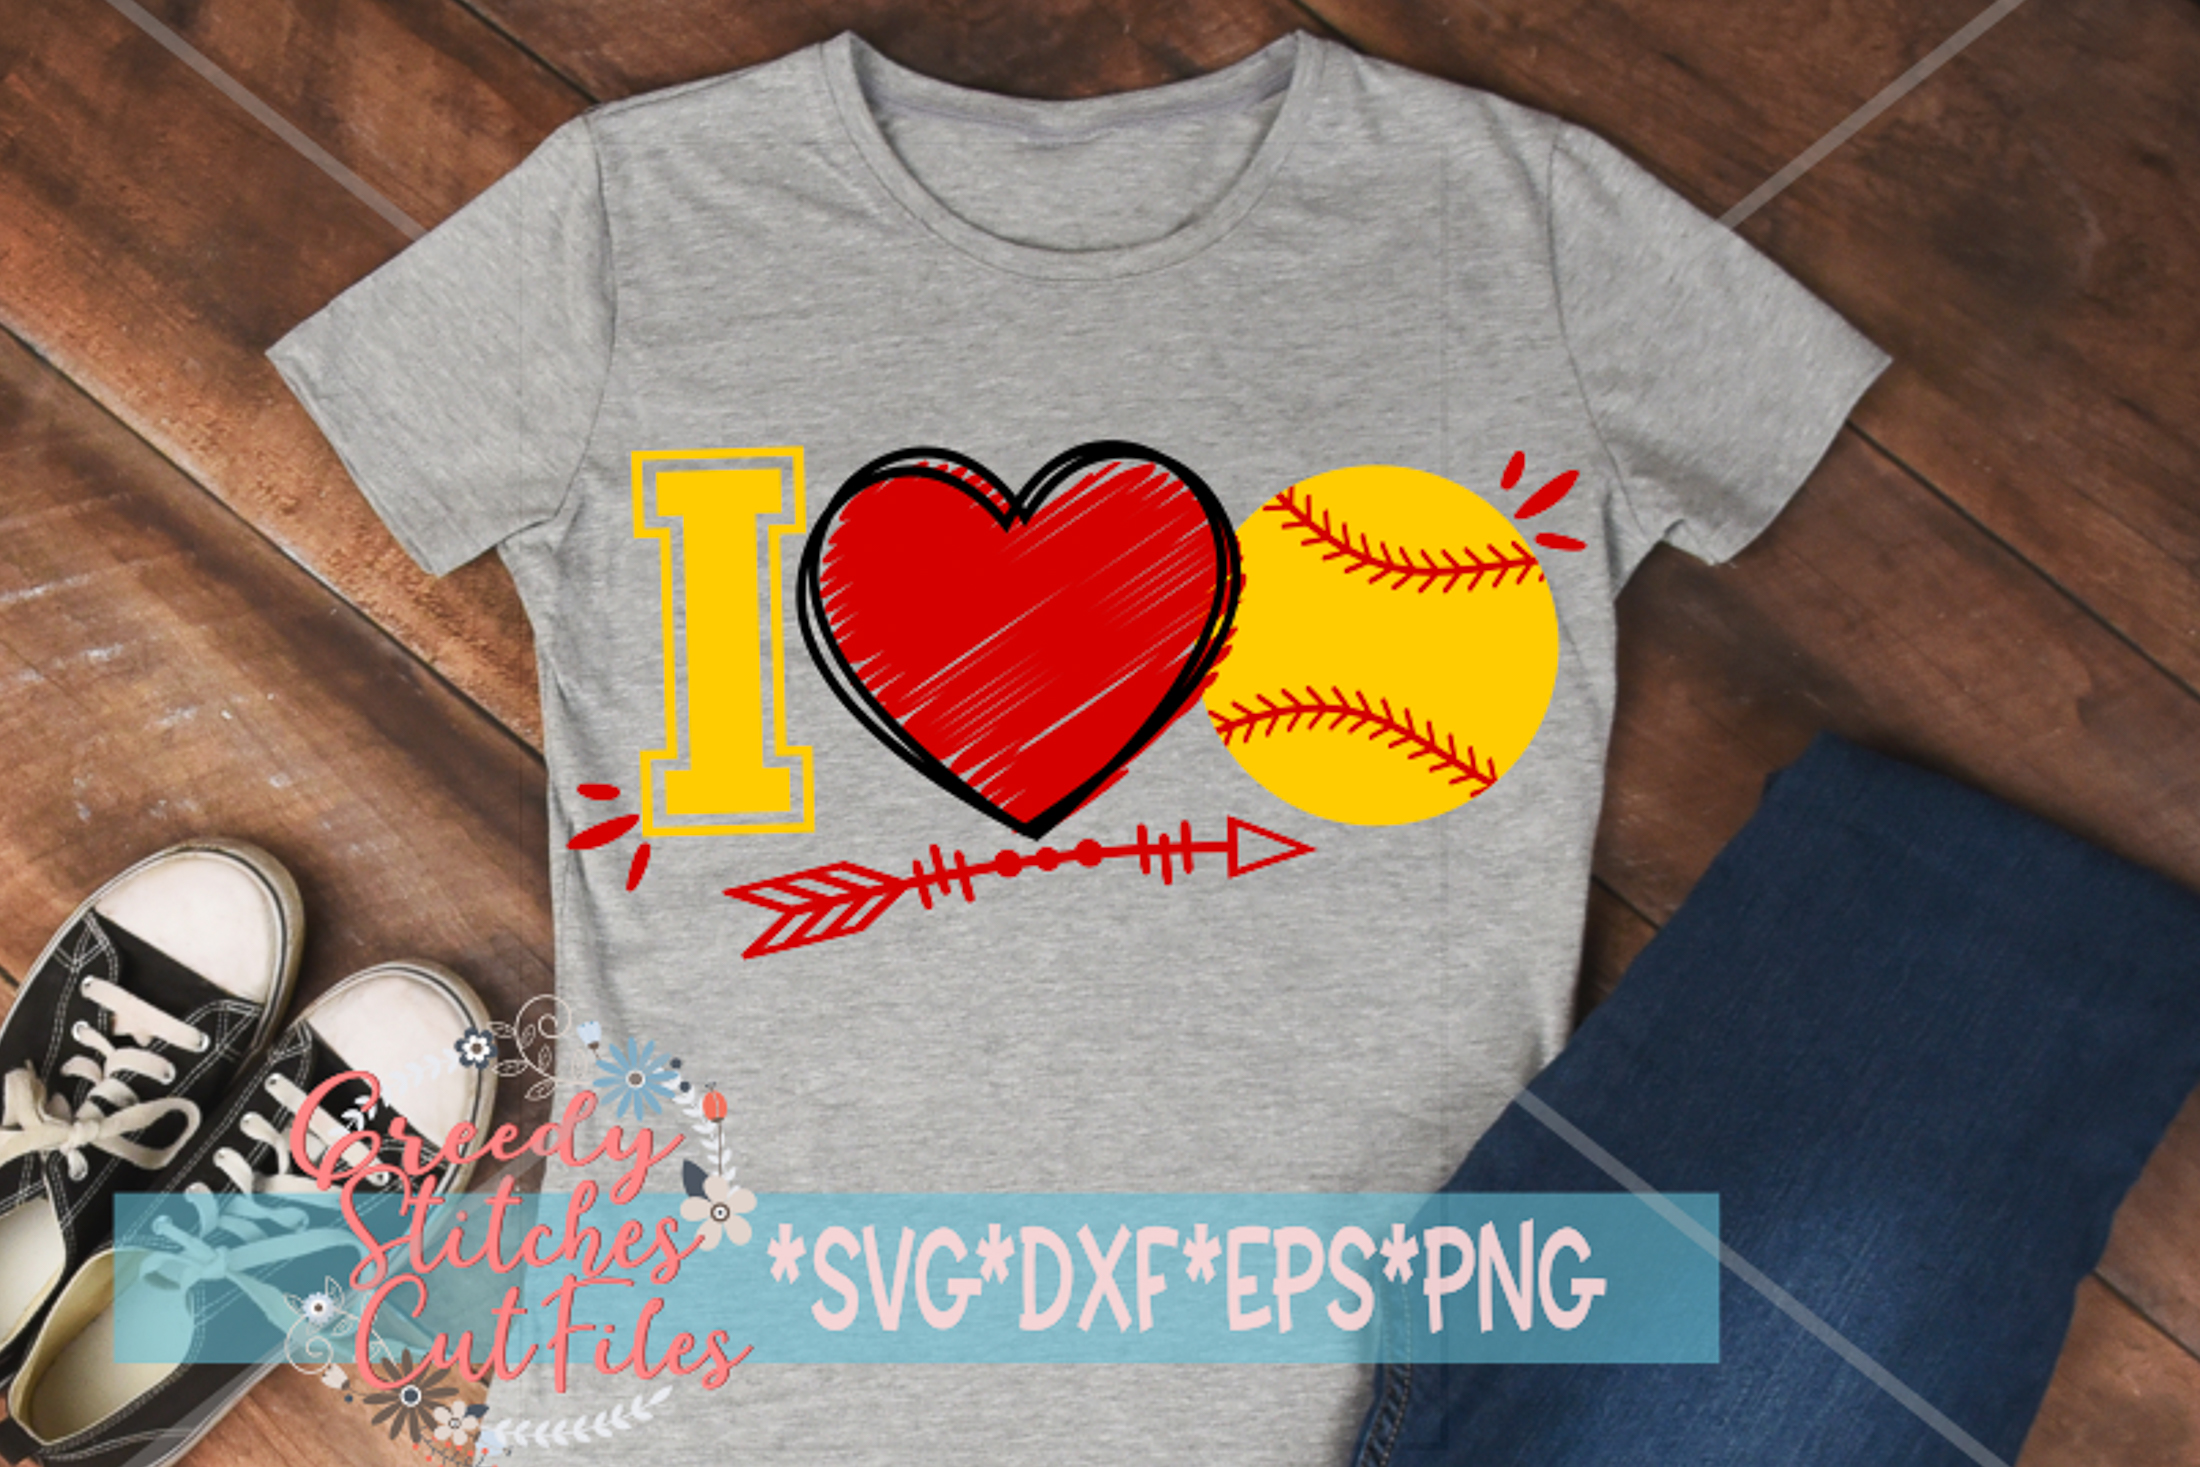 I Love Softball SVG, DXF, EPS, PNG Files example image 3